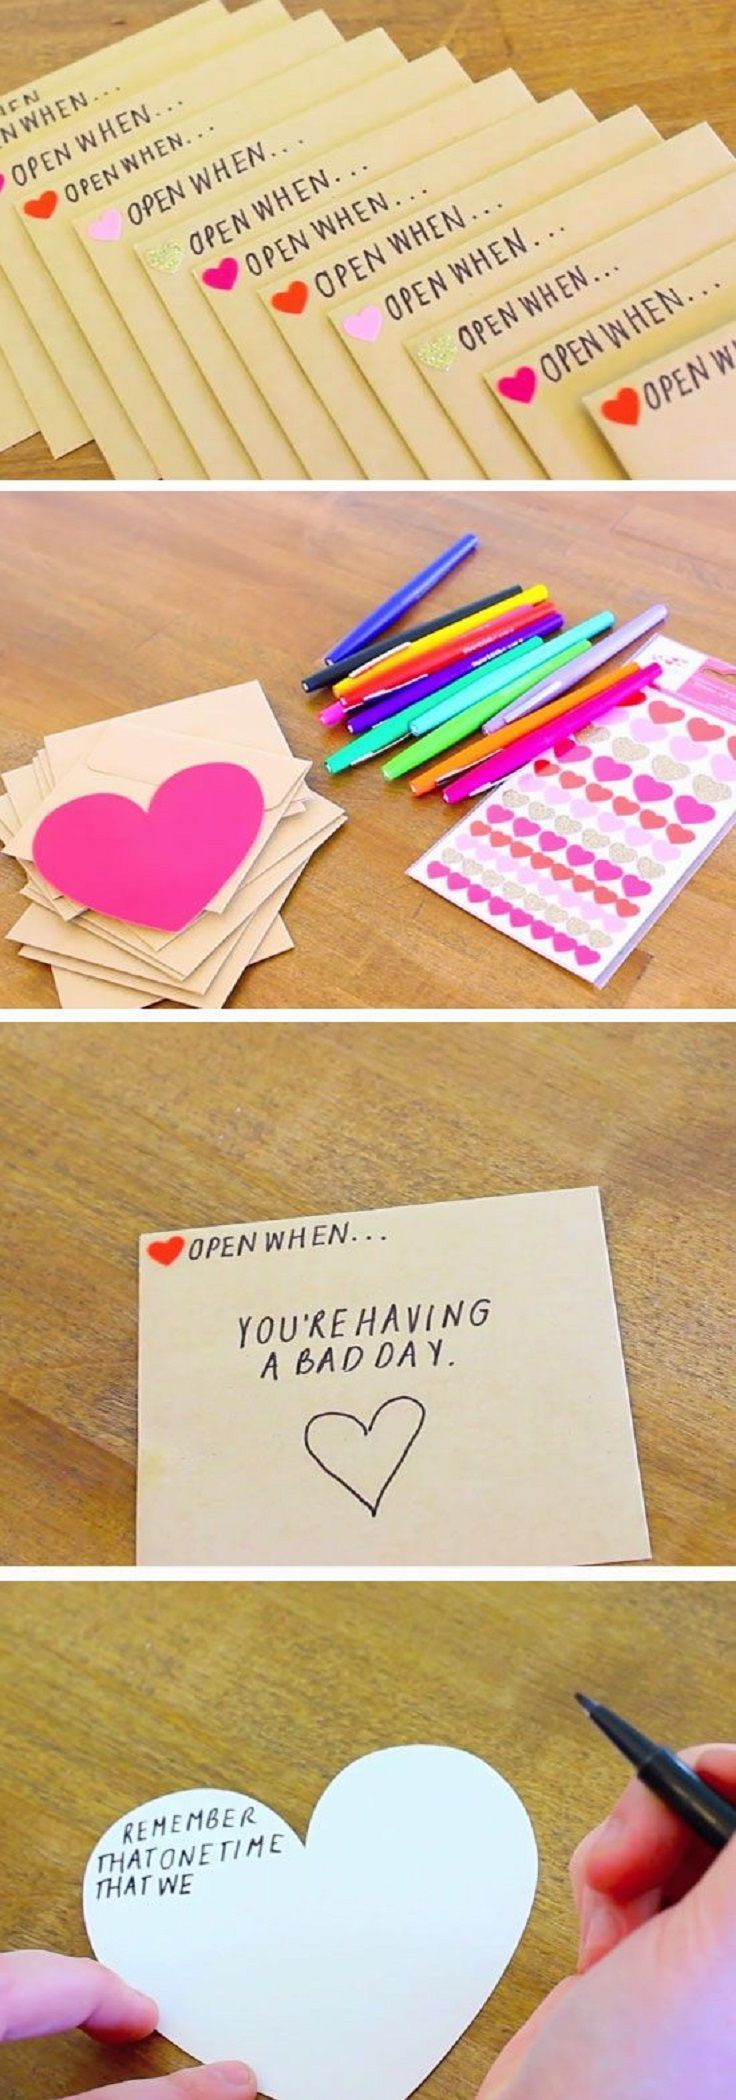 Open When Envelopes – DIY Gift Idea for Friends and Sweethearts – A Creative, Meaningful and Cheap DIY Gifts for Friends and Family – #Cheap #Creative #DIY #envelopes #Family #friends #gift #Gifts #idea #meaningful #Open #Sweethearts – #giftideasforboyfriend #gift #ideas #boyfriend #2019 #christmas #noel #gifts